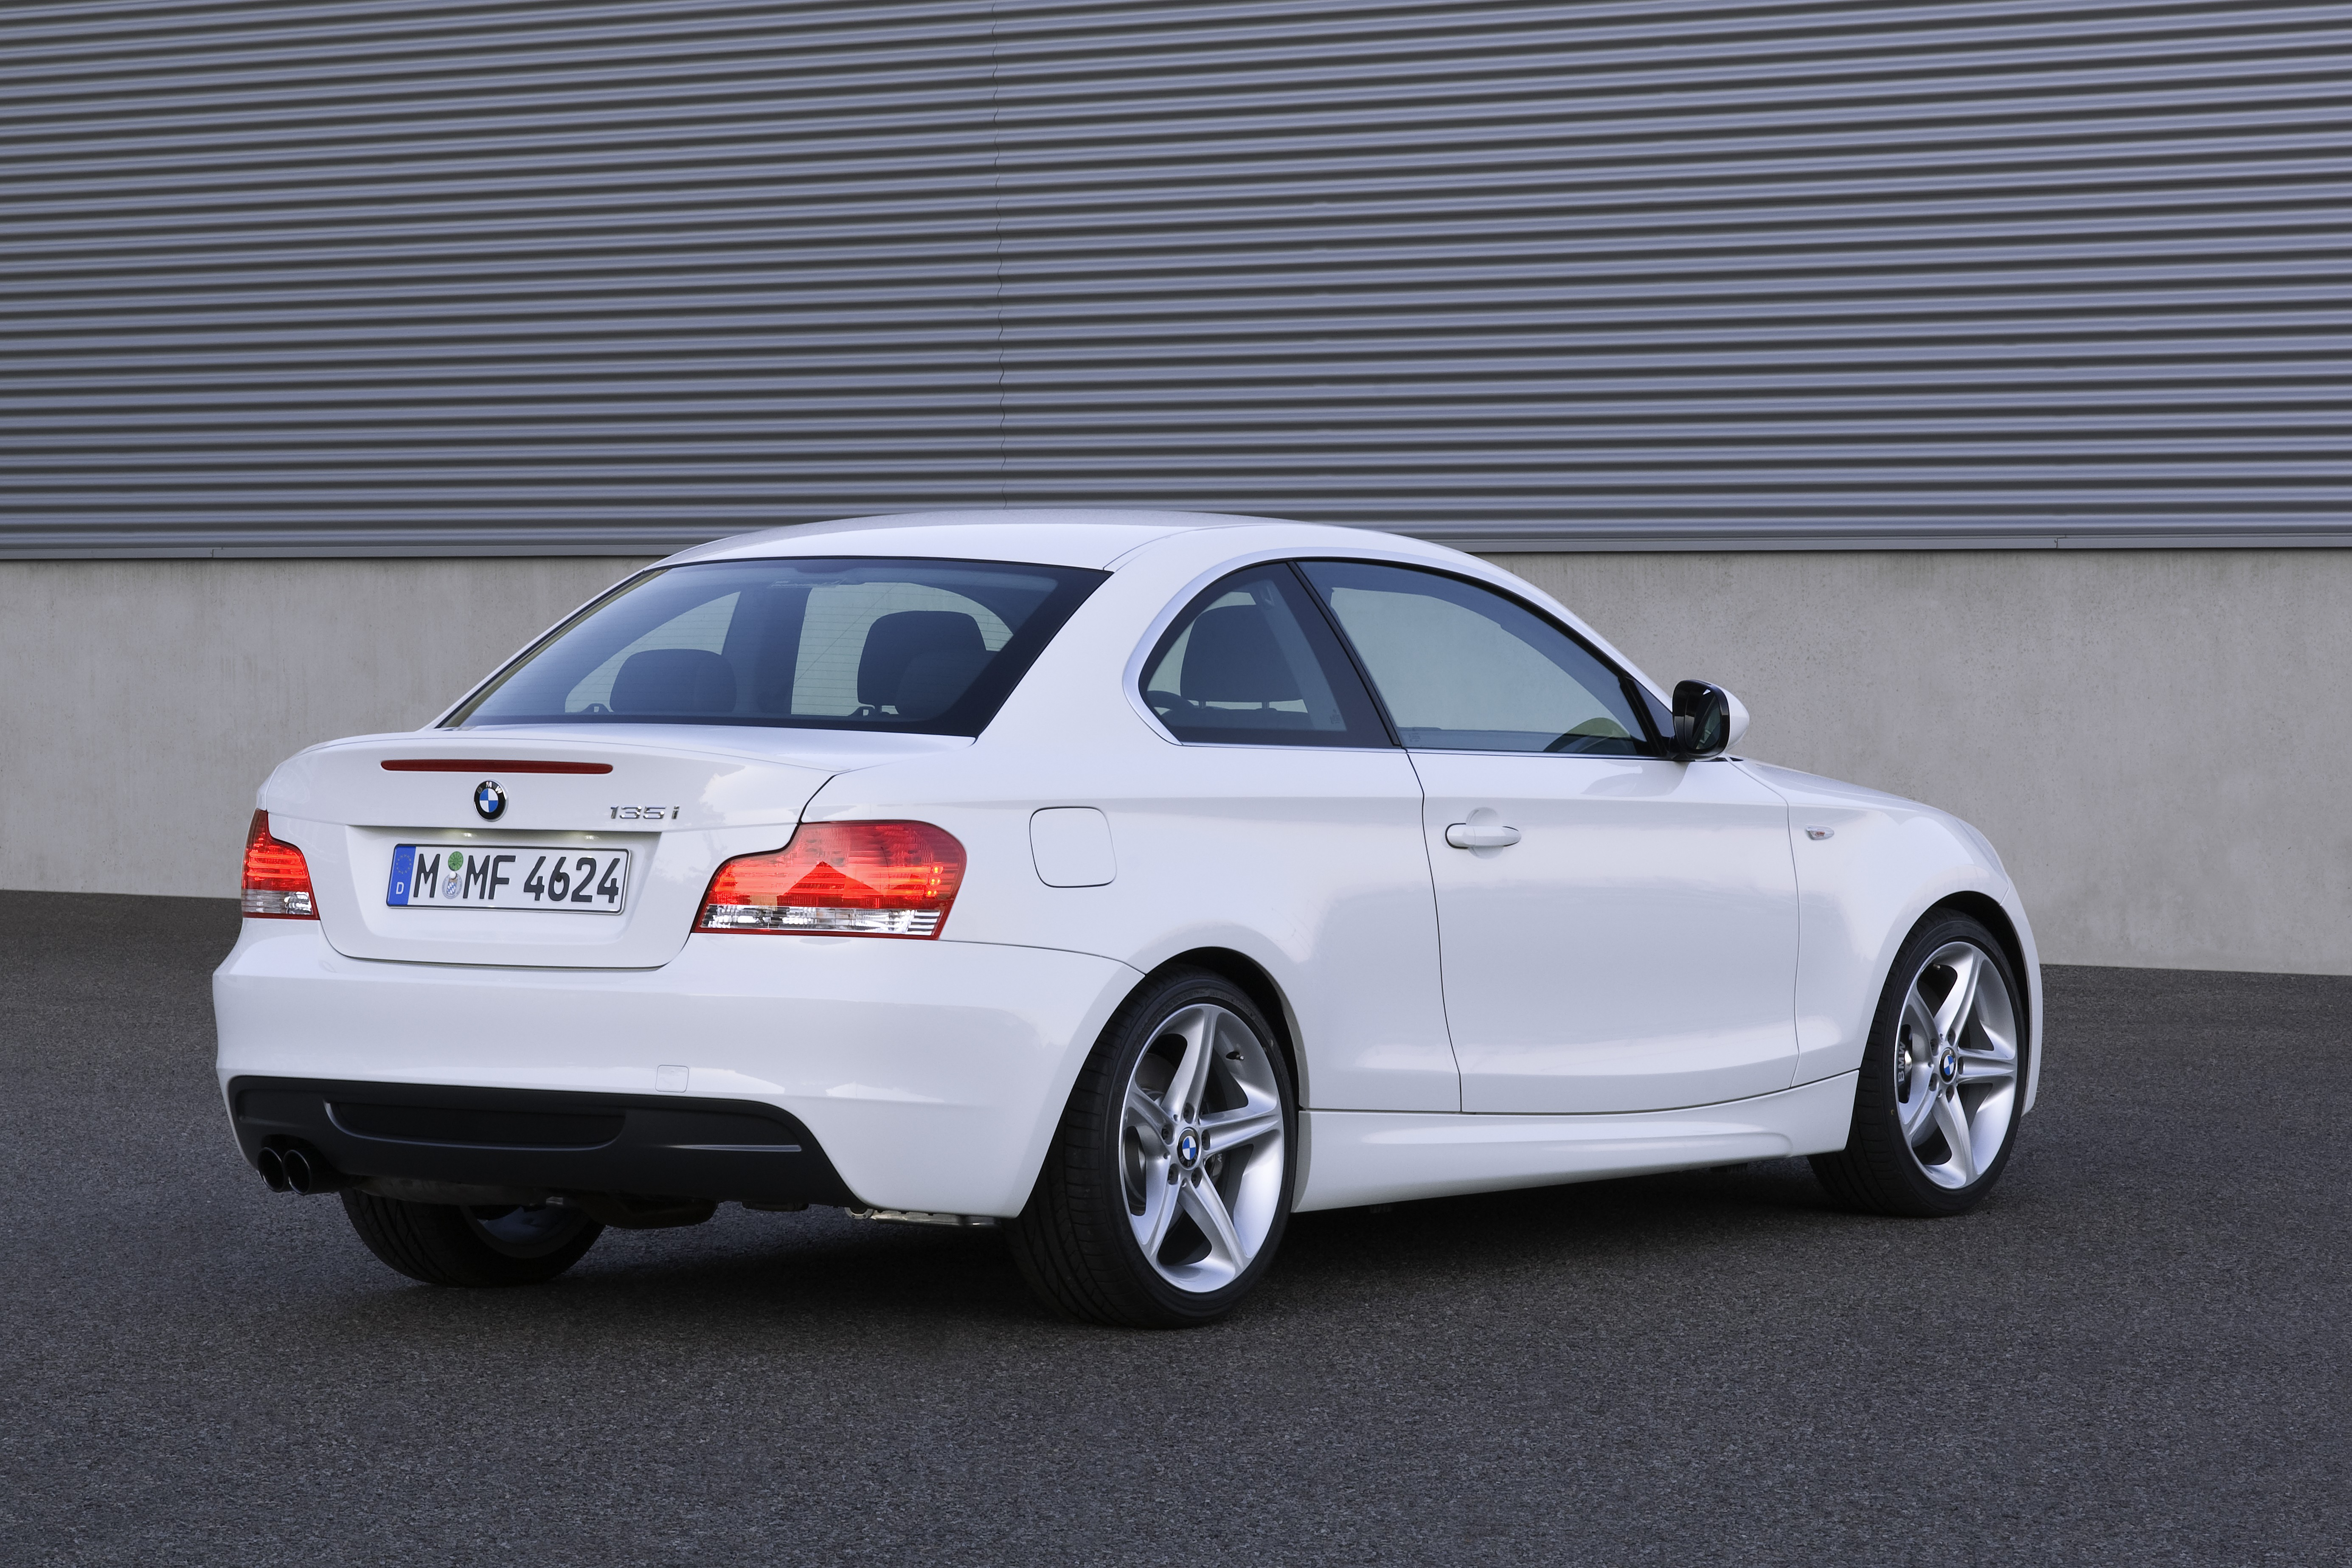 bmw 1er coupe (e82) 2010 pictures